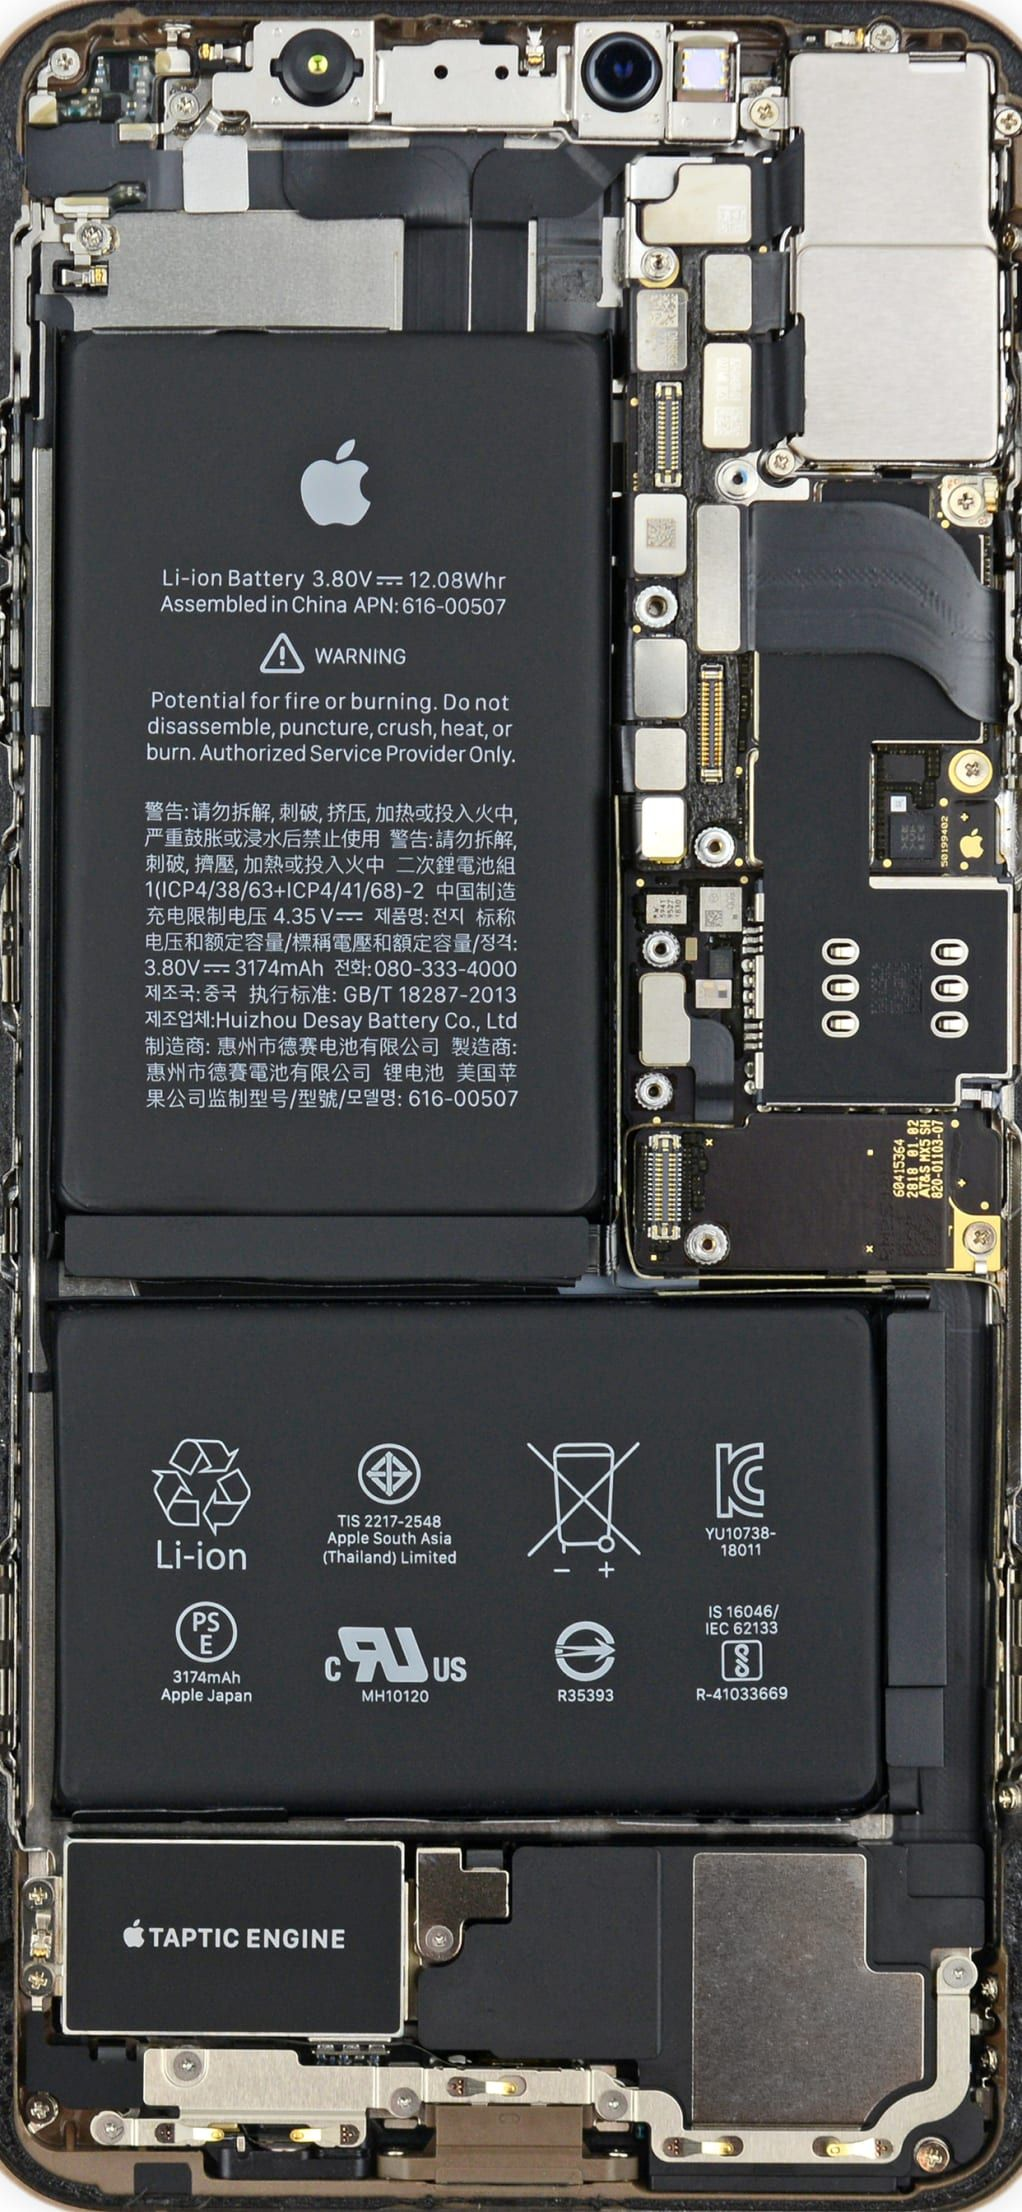 You Can Show Off The Inside Of Your New Iphone Xs With This Transparent Wallpaper Ultralinx Hd Wallpaper Iphone Transparent Wallpaper Apple Wallpaper Iphone